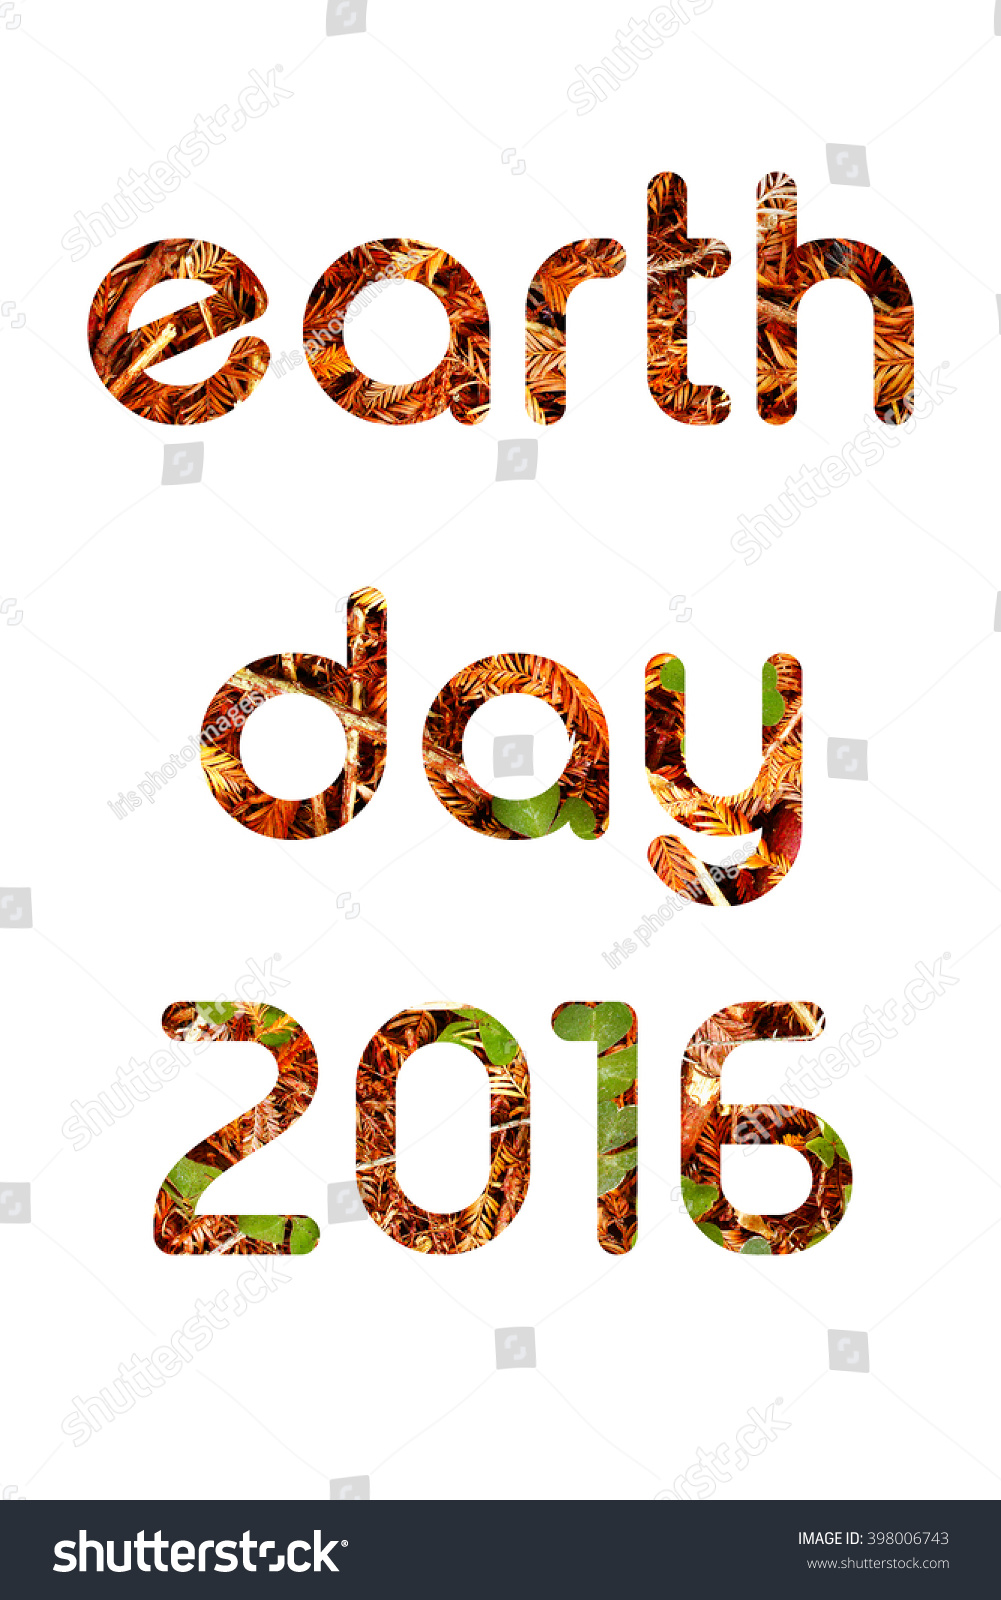 Earth day 2016 words concept using stock photo 398006743 earth day 2016 words concept using leaves and needles isolated on white buycottarizona Image collections